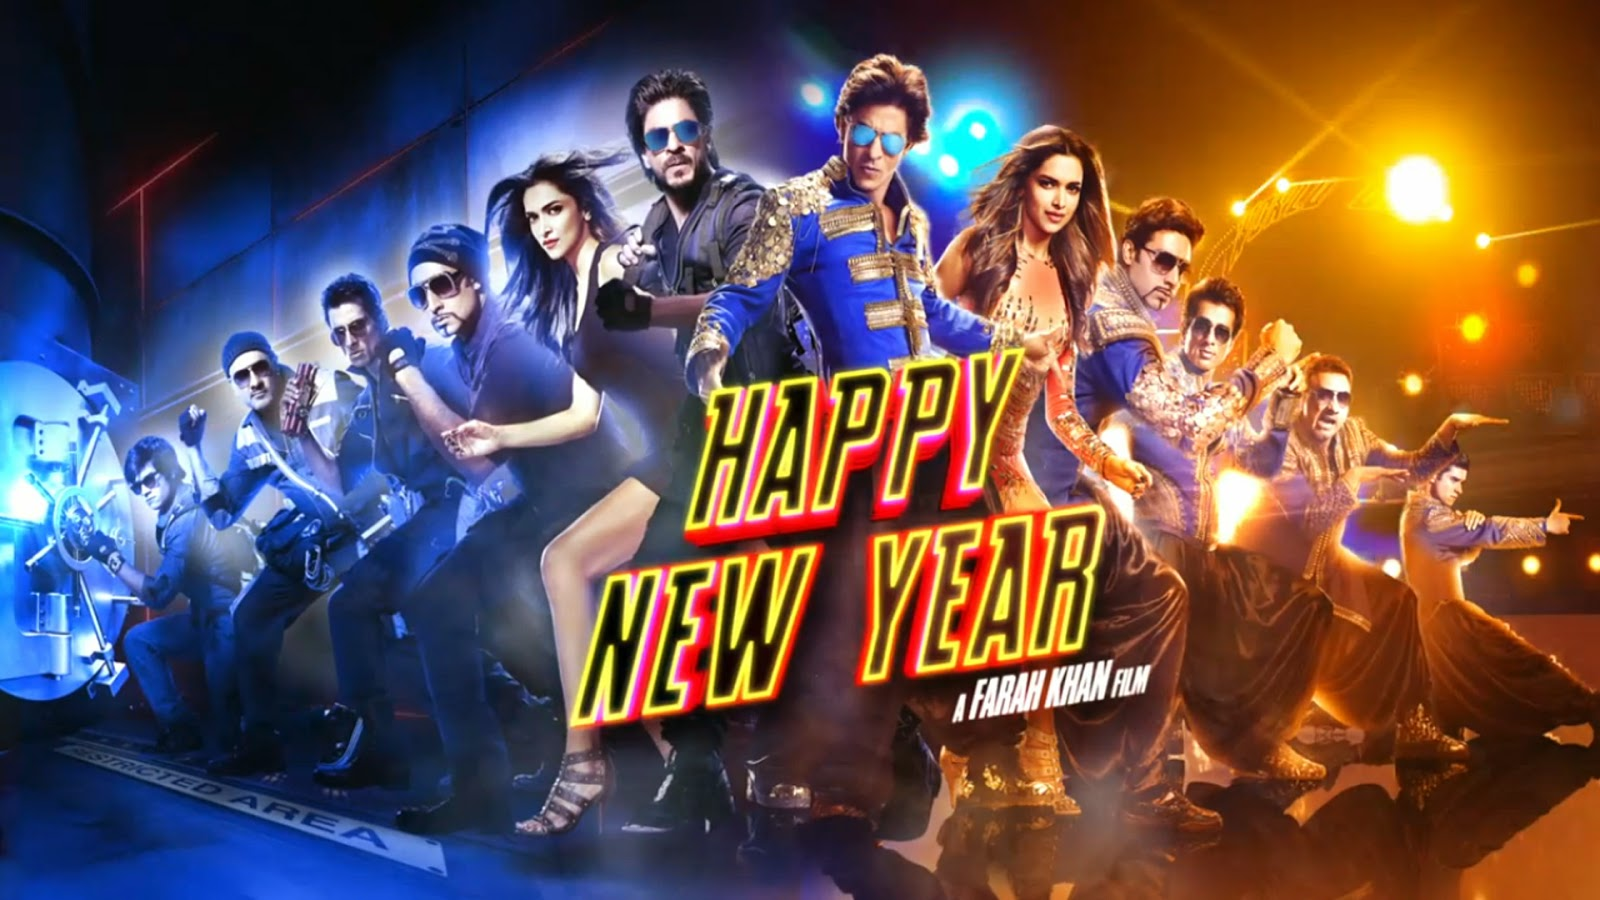 http://shpakatony.blogspot.com/2014/12/watch-happy-new-year-hindi-movie-online.html